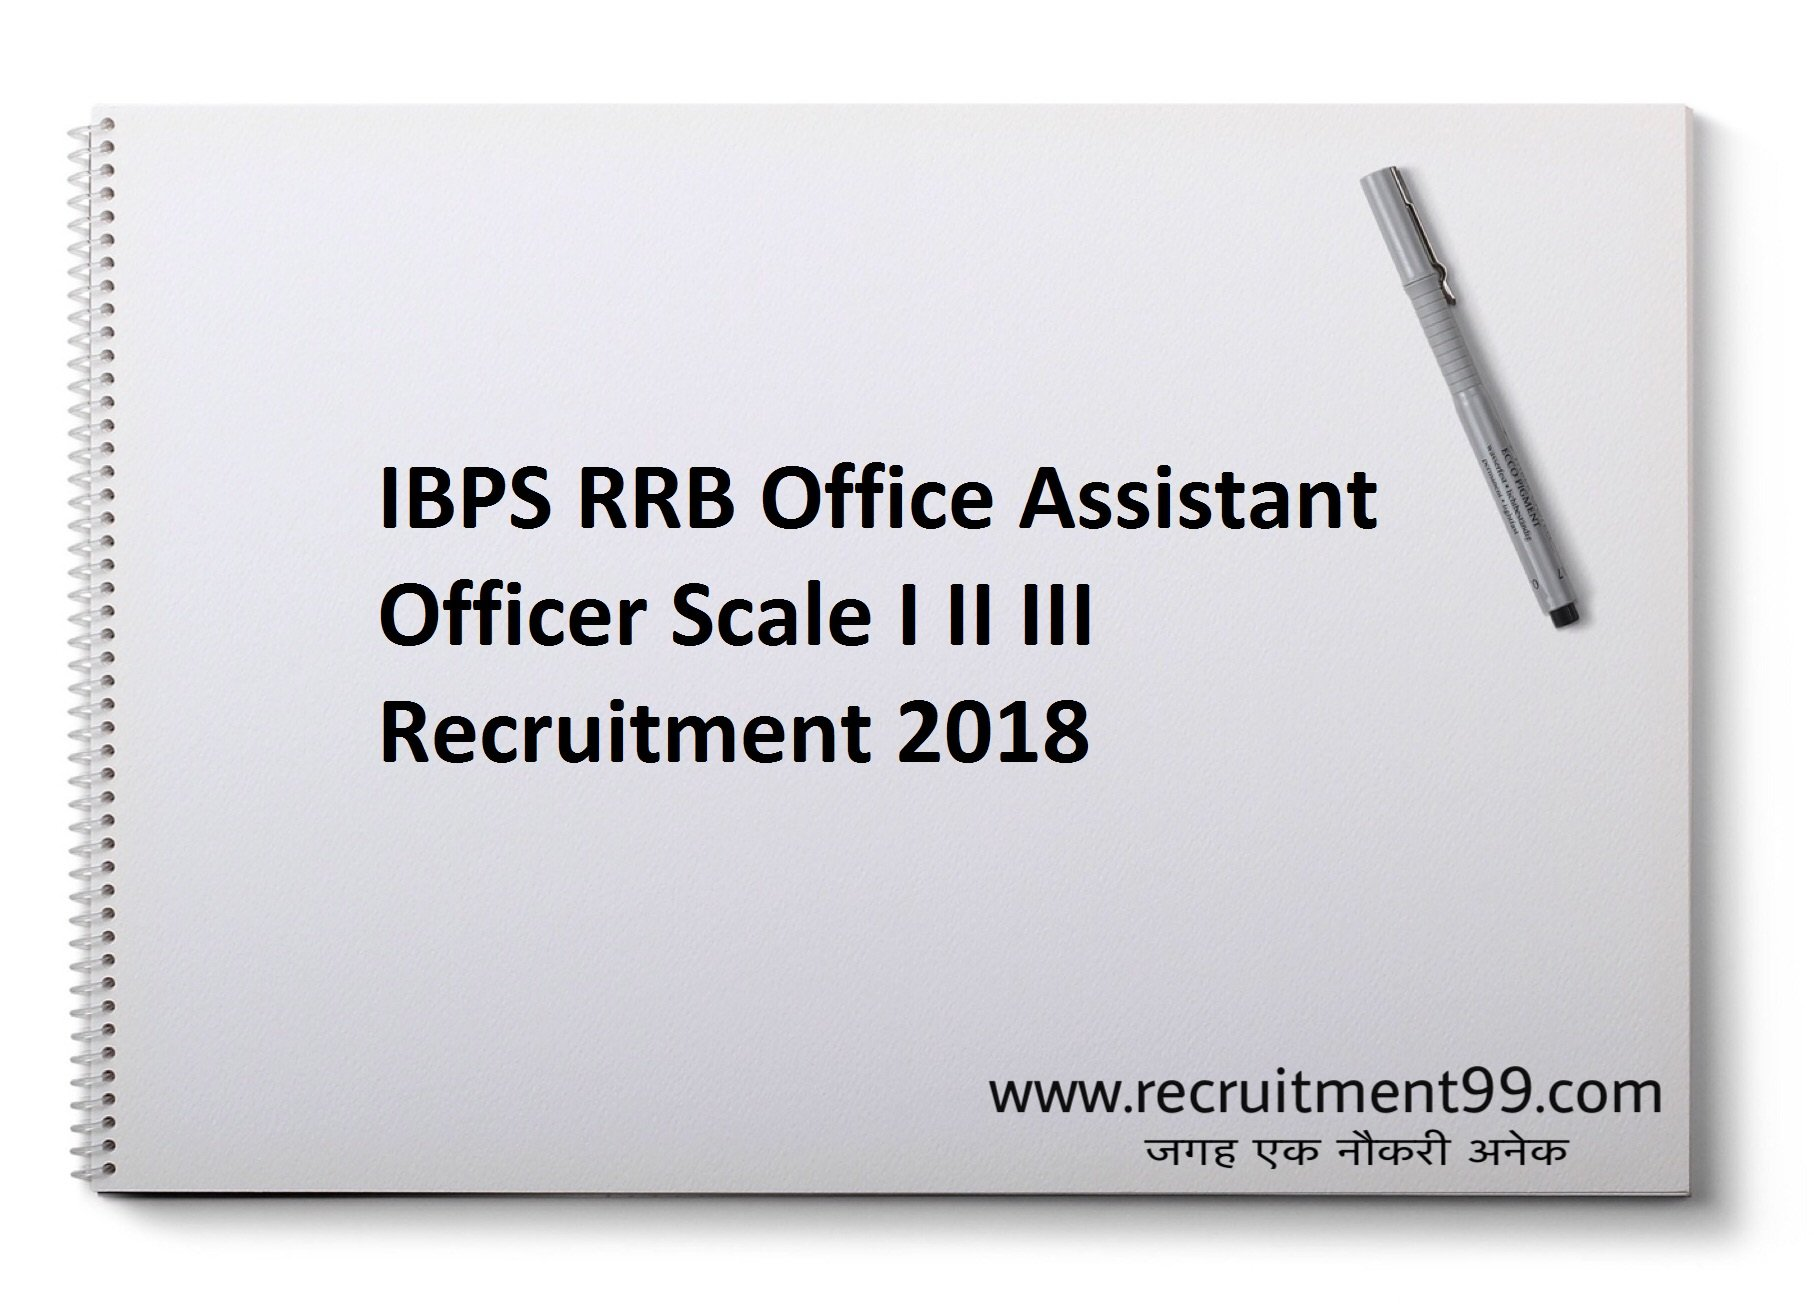 IBPS RRB Office Assistant Officer Scale I II III Recruitment Admit Card Result 2018